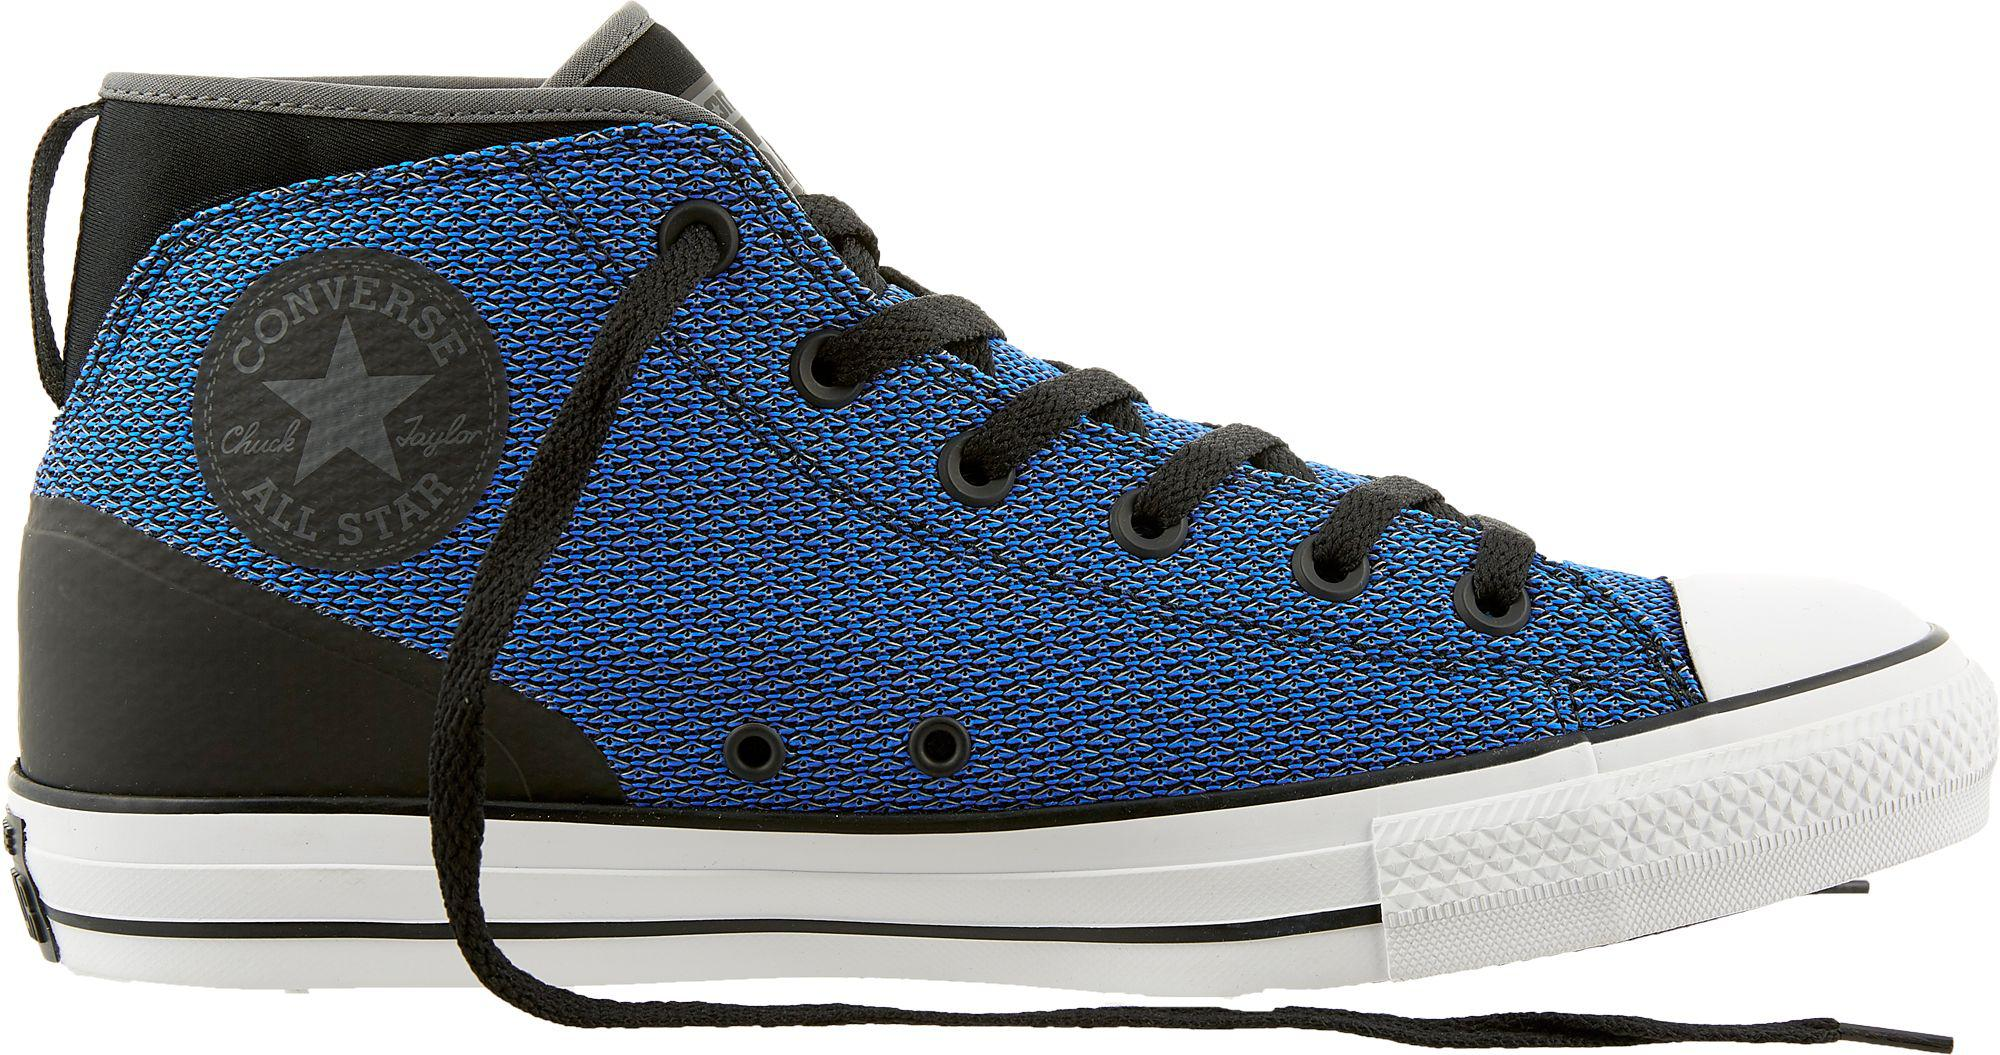 Lyst - Converse Chuck Taylor All Star Syde Street Mid-top Casual ... 527ab0fd6